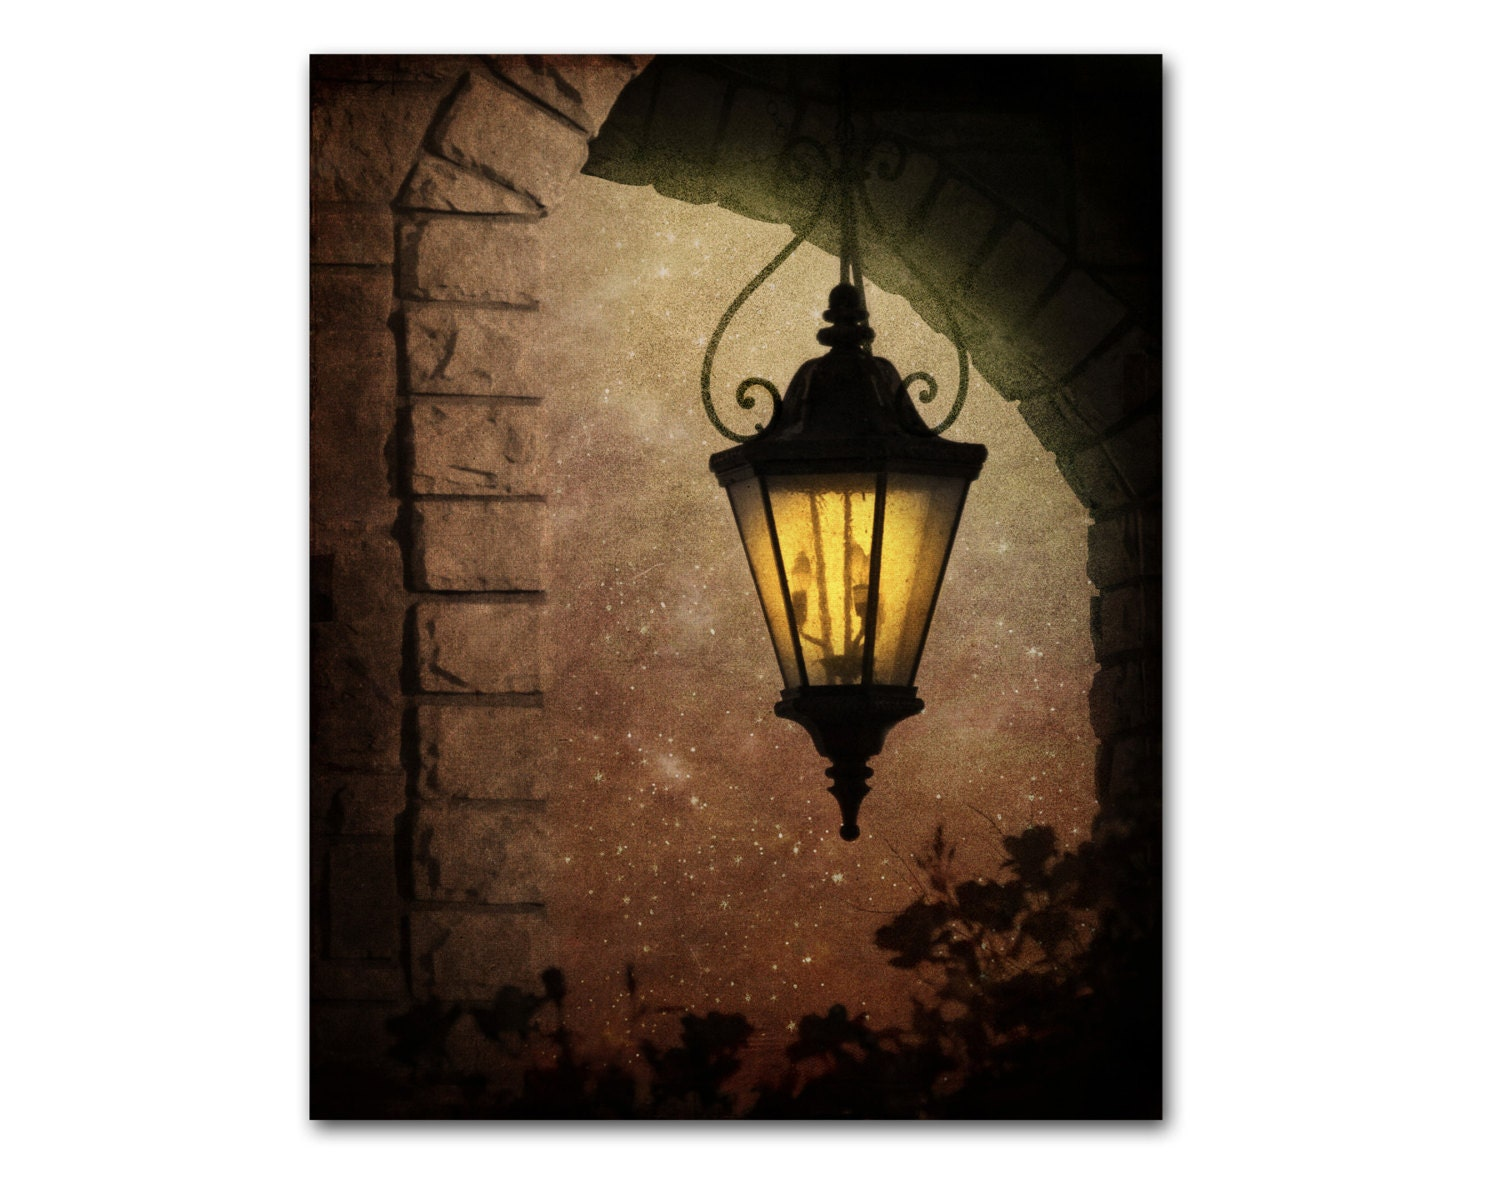 Wall Decor Lamp : Wrought iron lamp wall art tuscan decor by